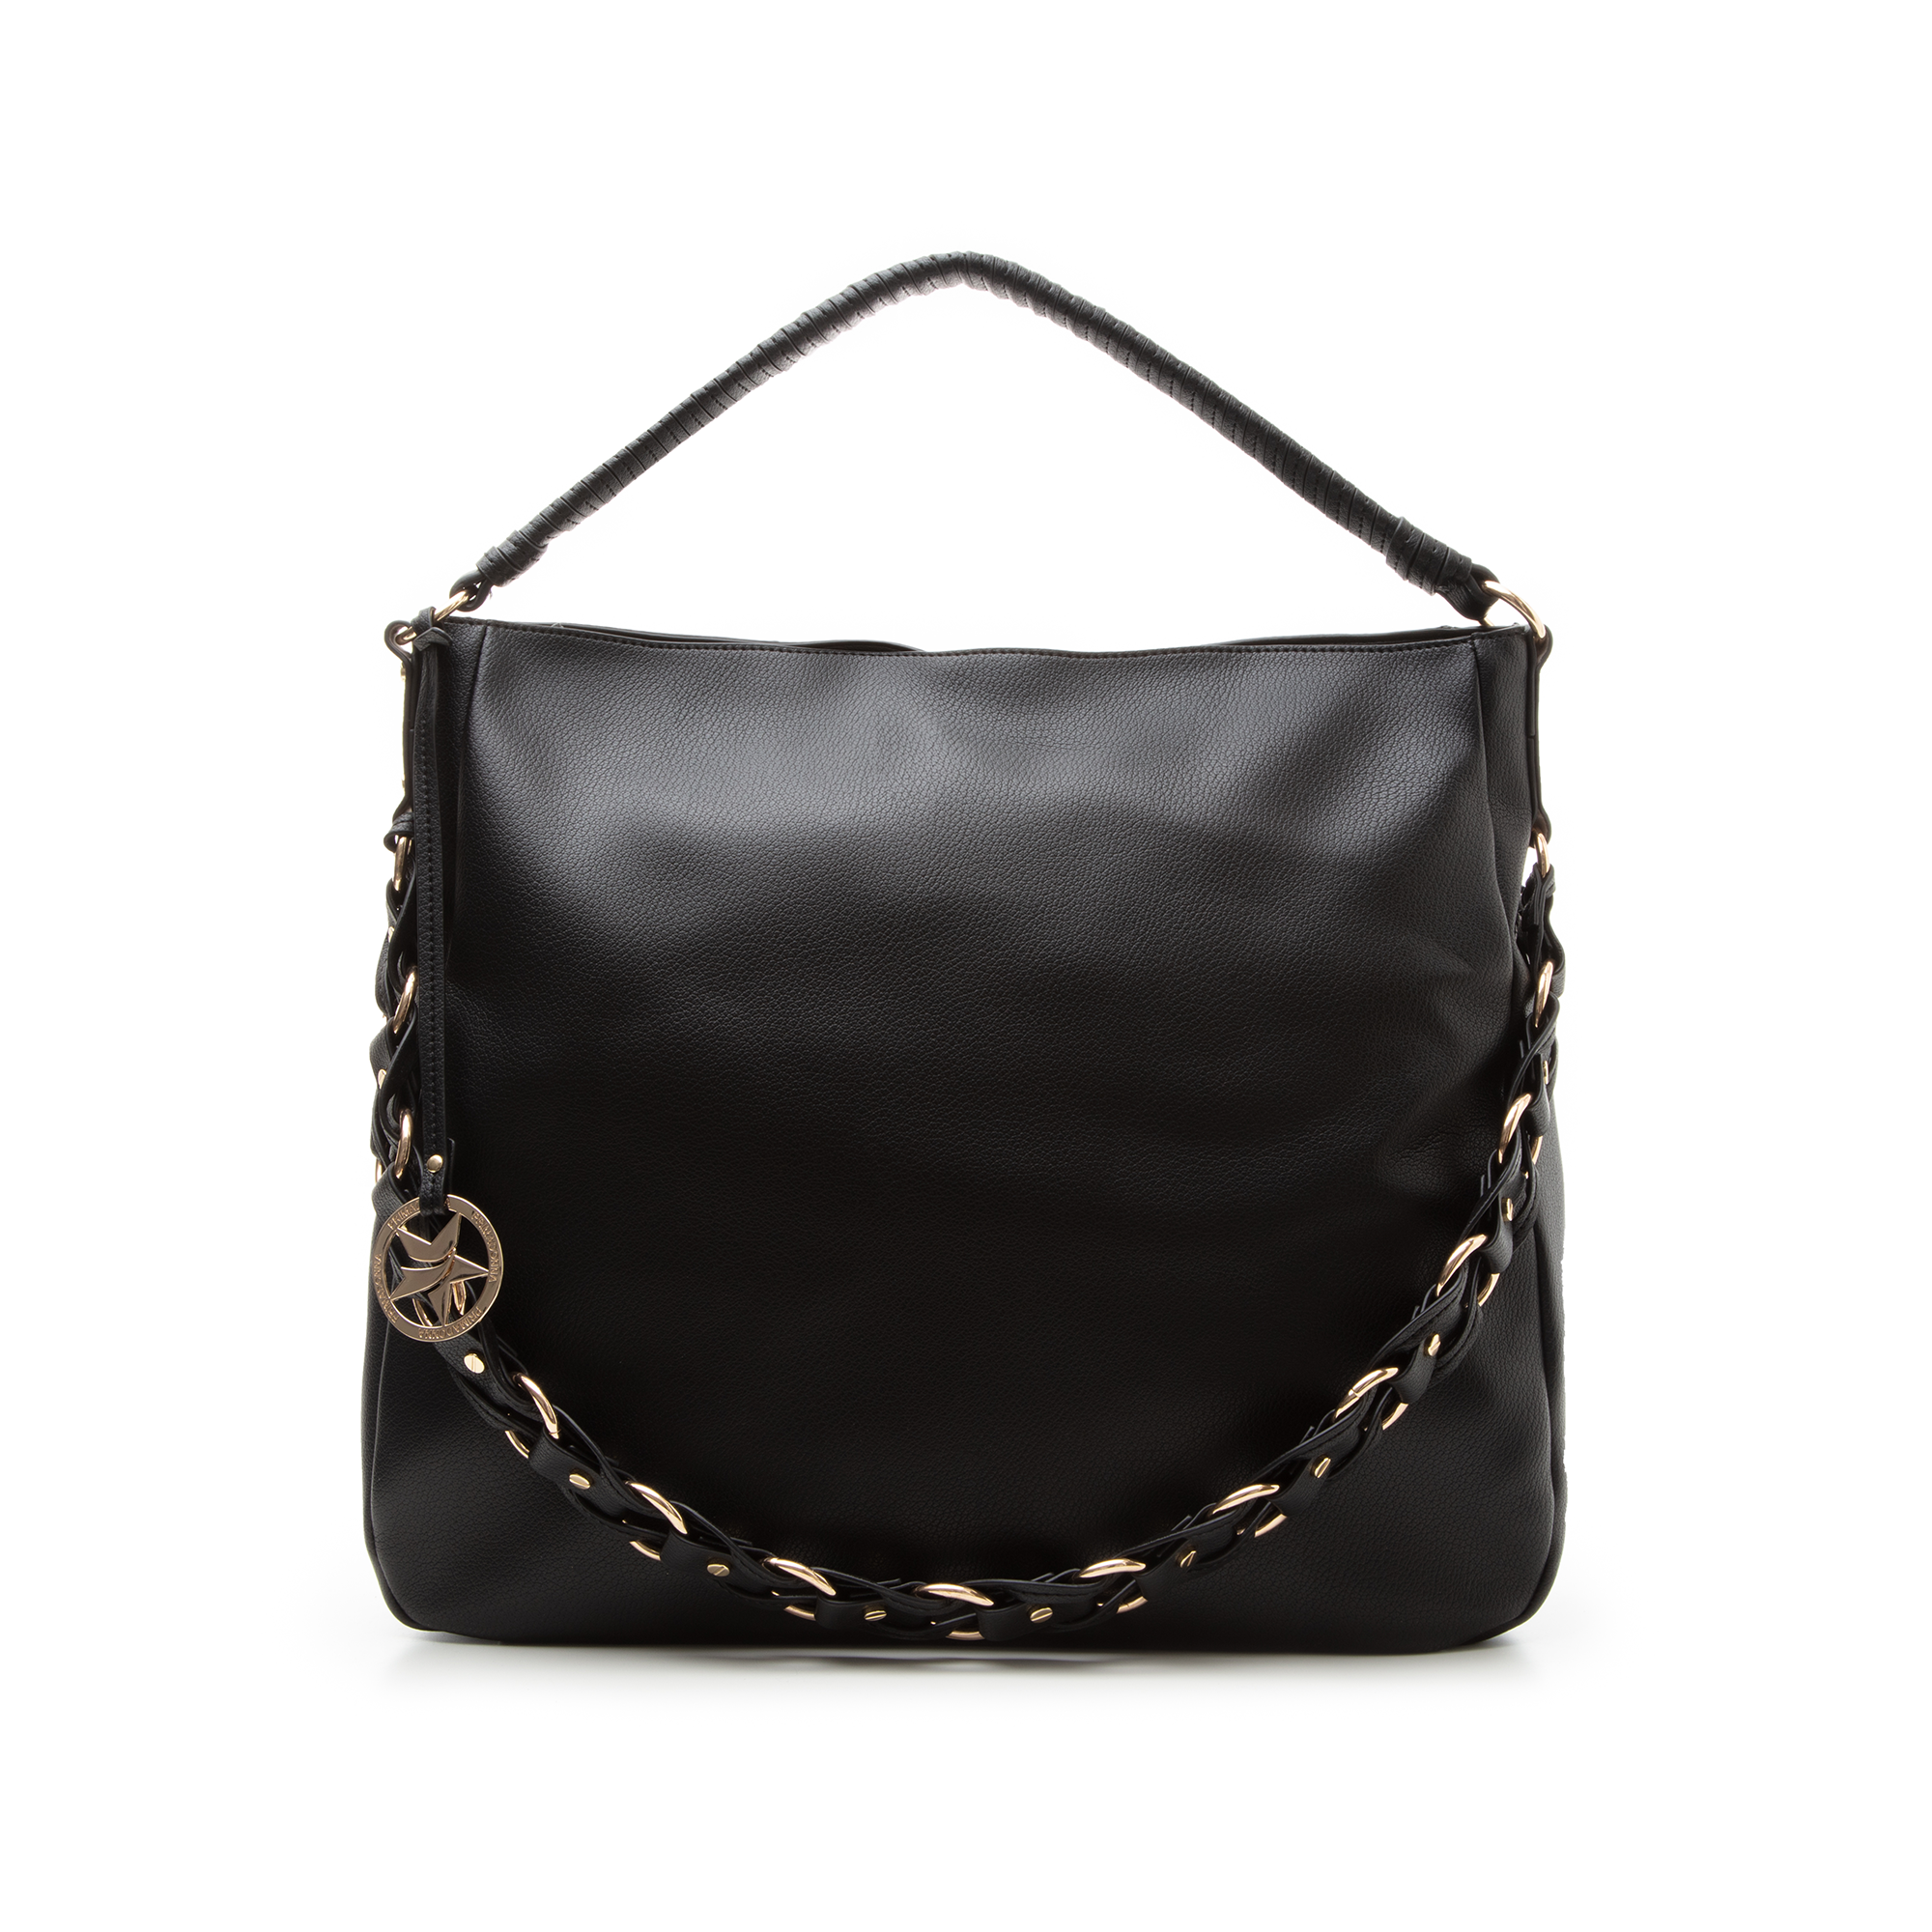 Maxi bag nera in eco-pelle con tracolla decor